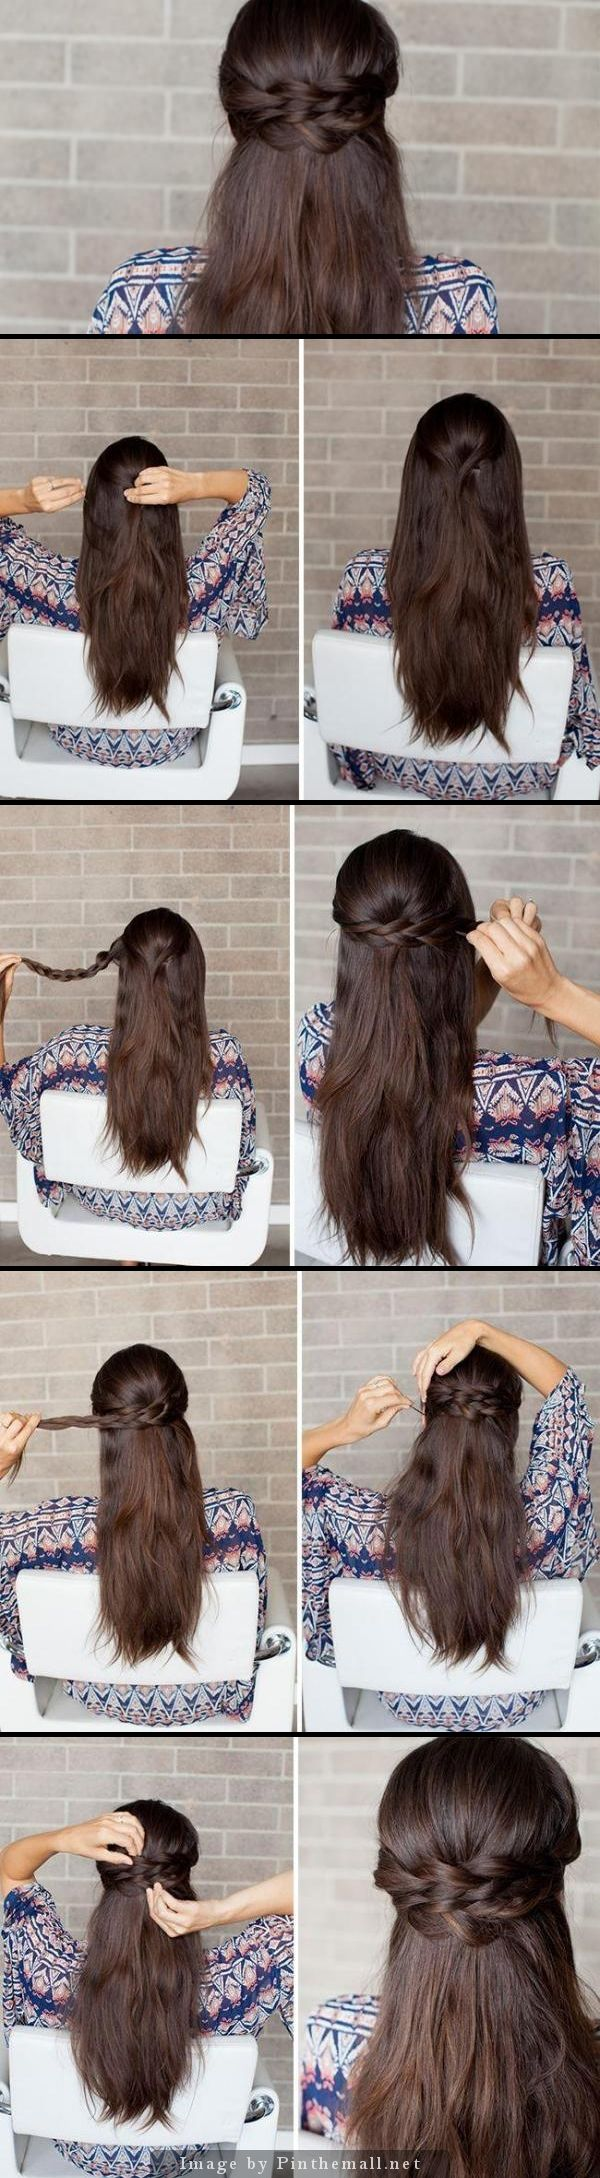 Love this half up half down braided tutorial. This style can work for any type of hair from short to long and straight to curly!